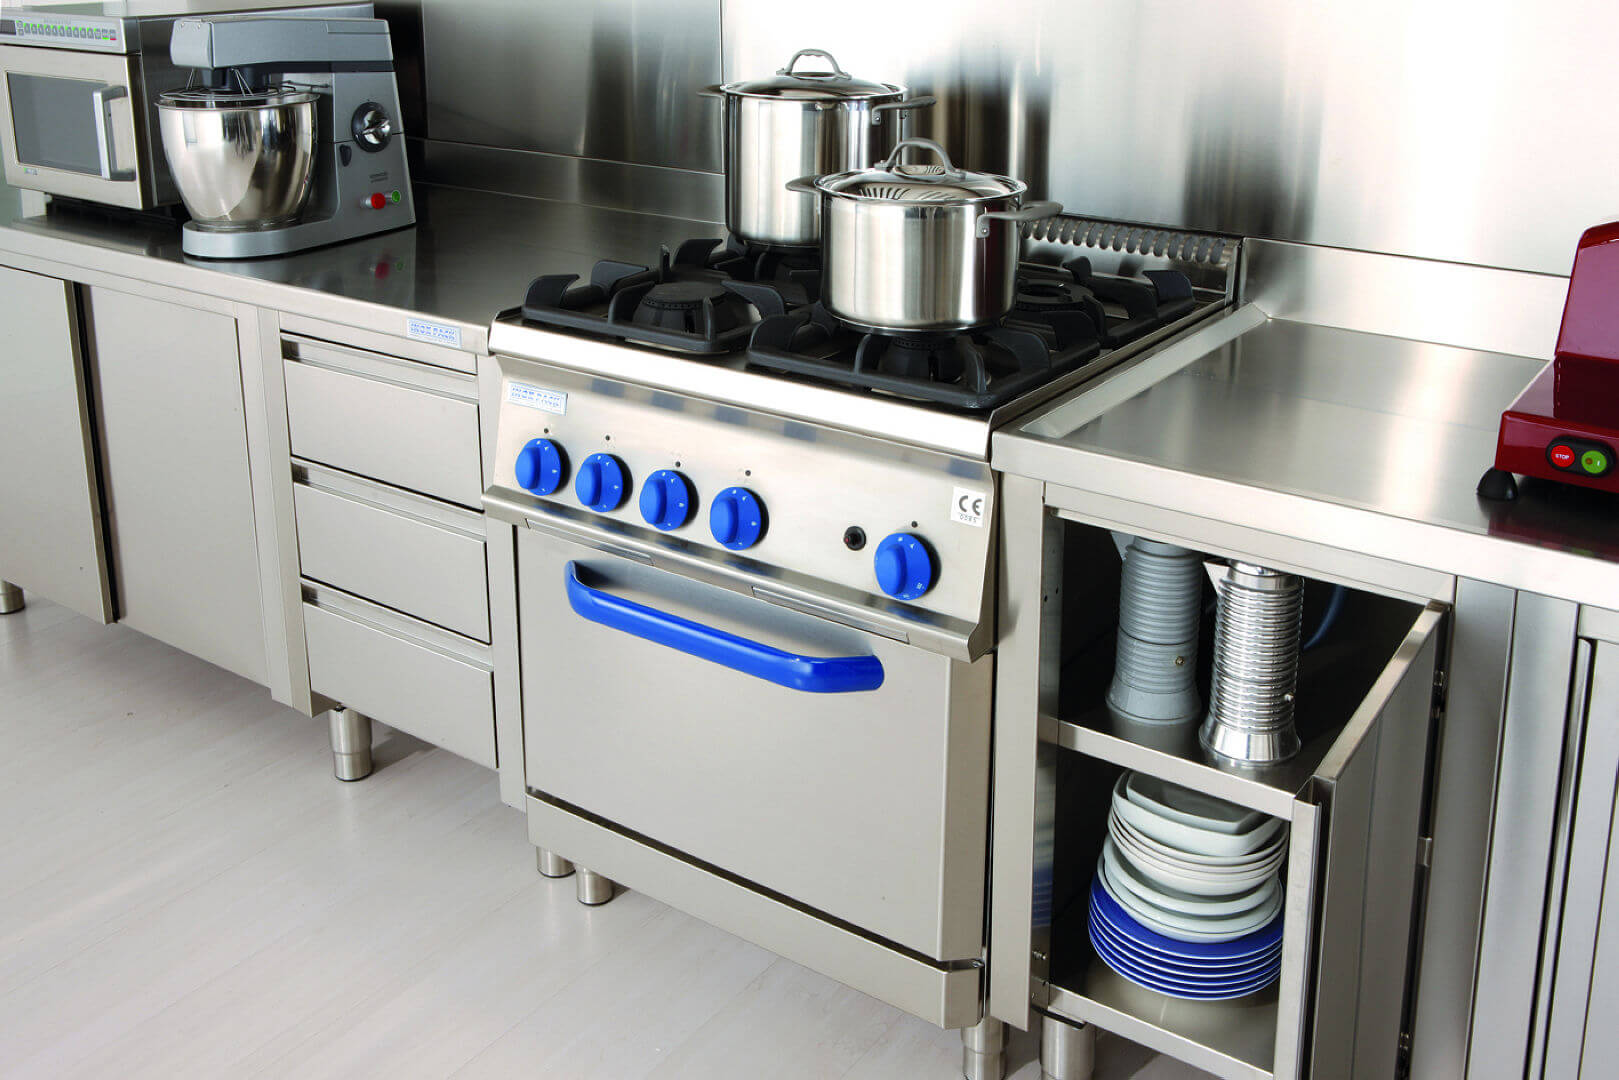 Arca Cucine Italy - Domestic stainless steel kitchens - 12 - Grand Gourmet Chef - Locking gas Professional Kitchen